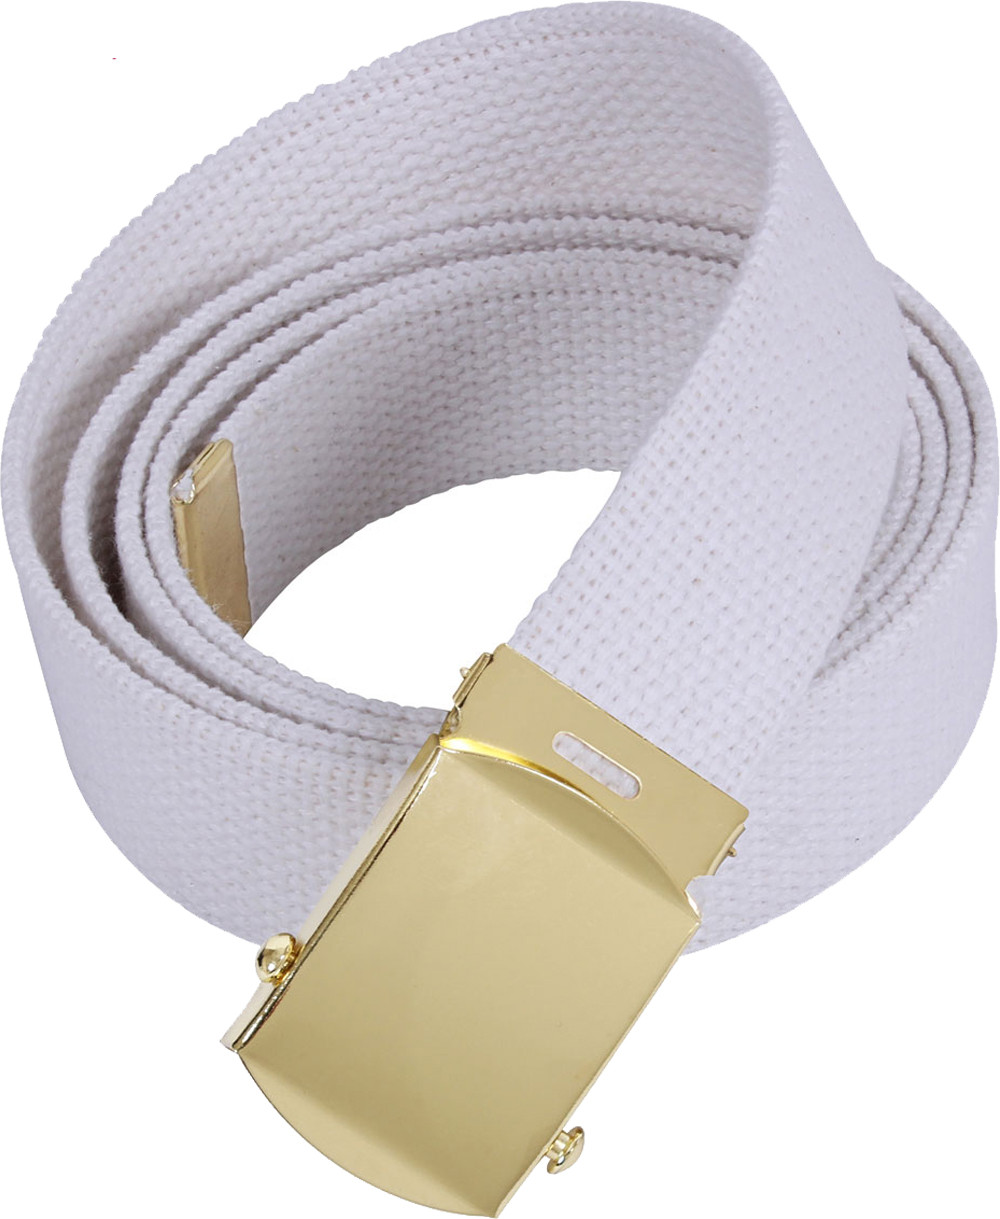 White Military Web Belt with Brass Buckle 628349fce33